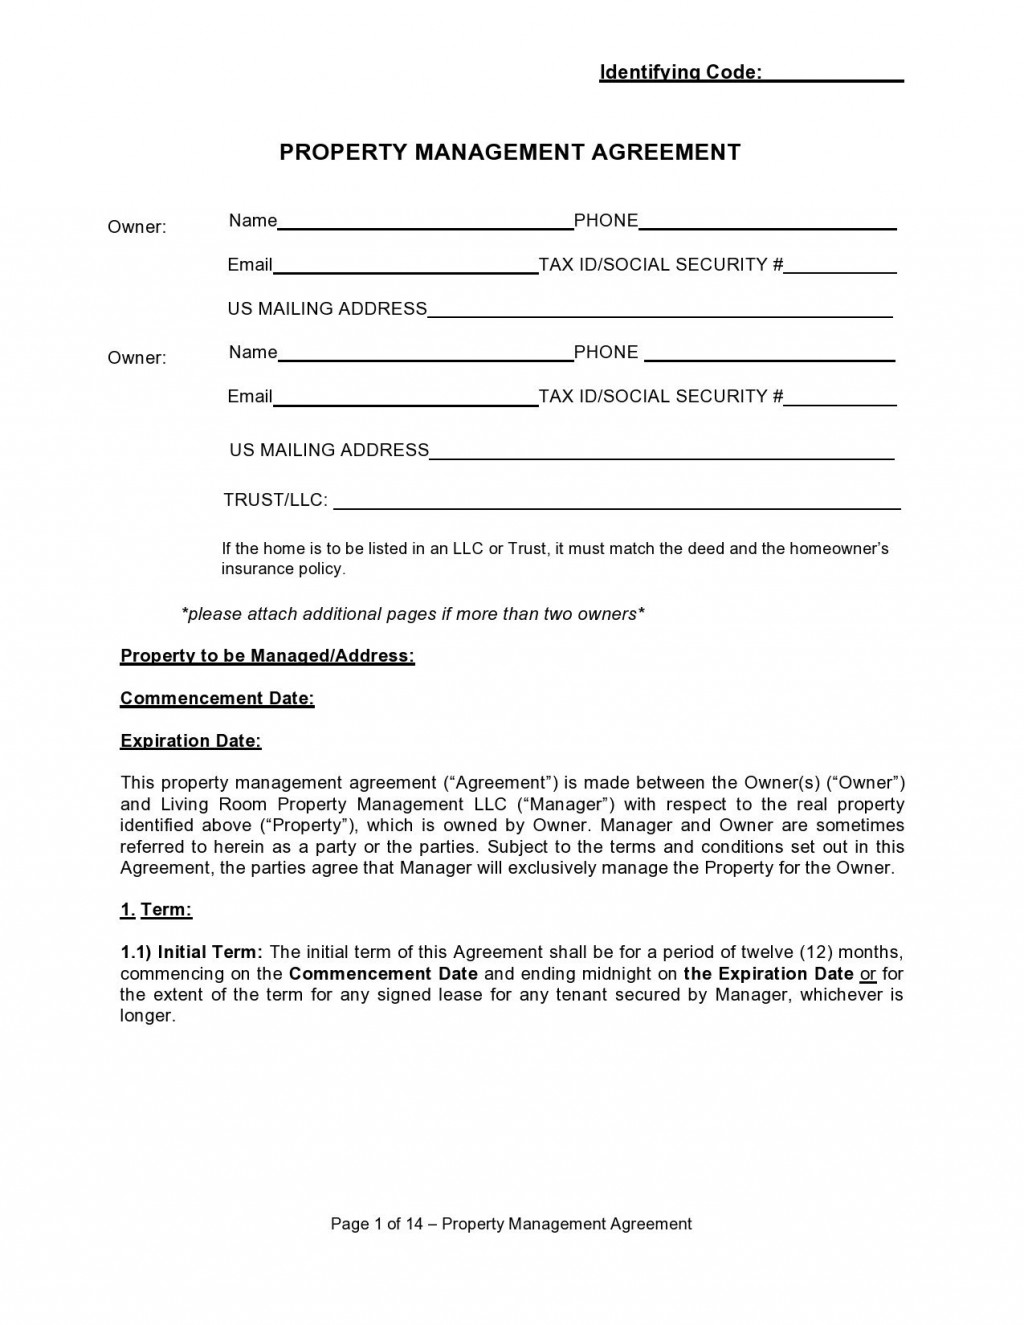 005 Simple Property Management Agreement Template Sample  Templates Termination Of Commercial FormLarge